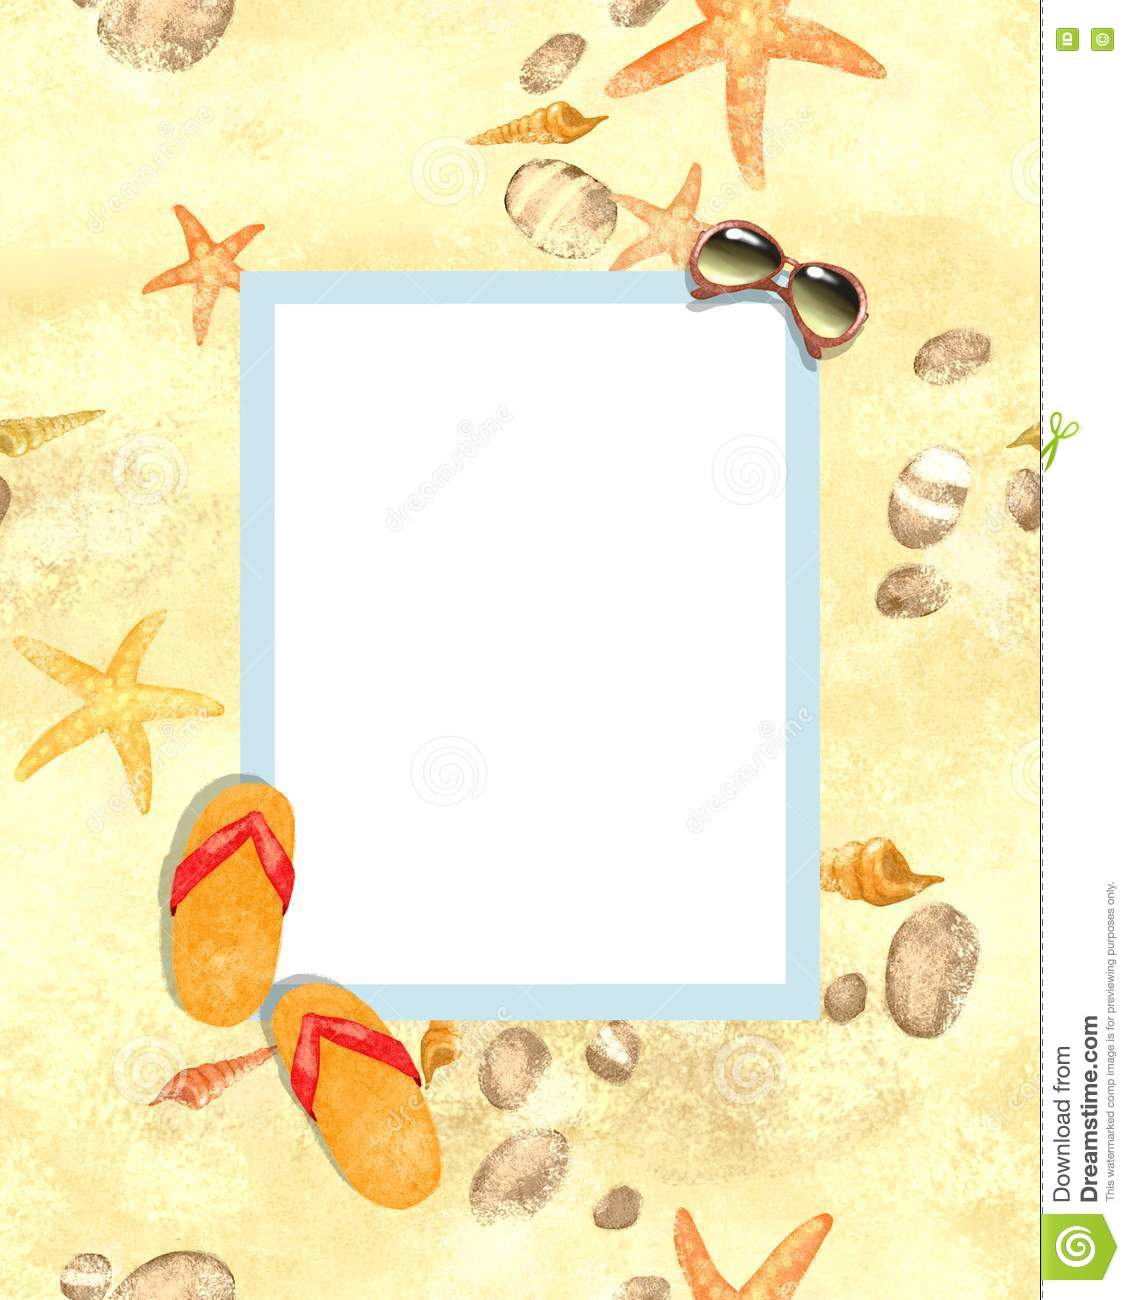 flops on a sand border frame on seamless background space for text